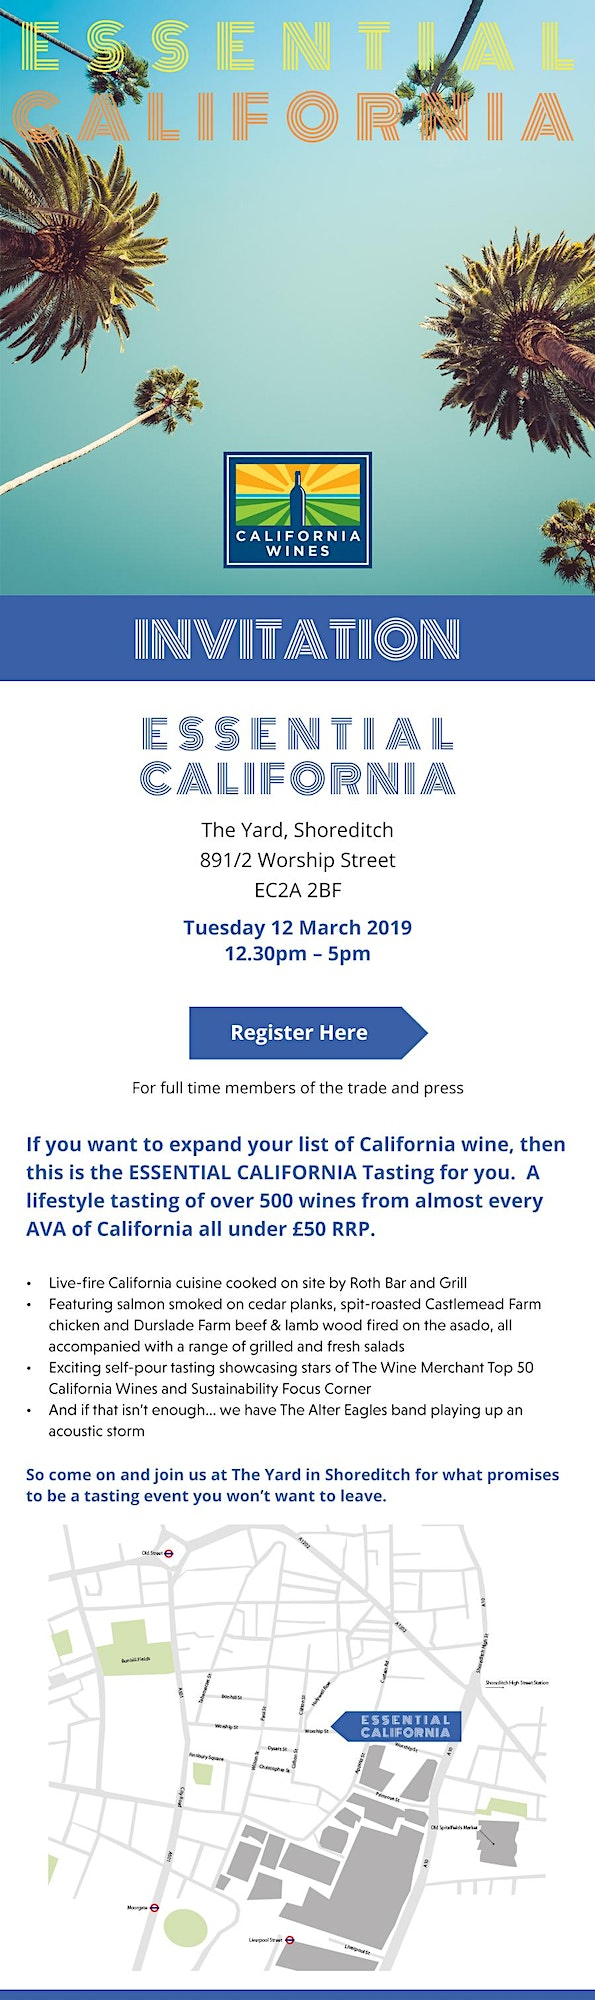 Essential California Wine Tasting - Wine trade and press only image